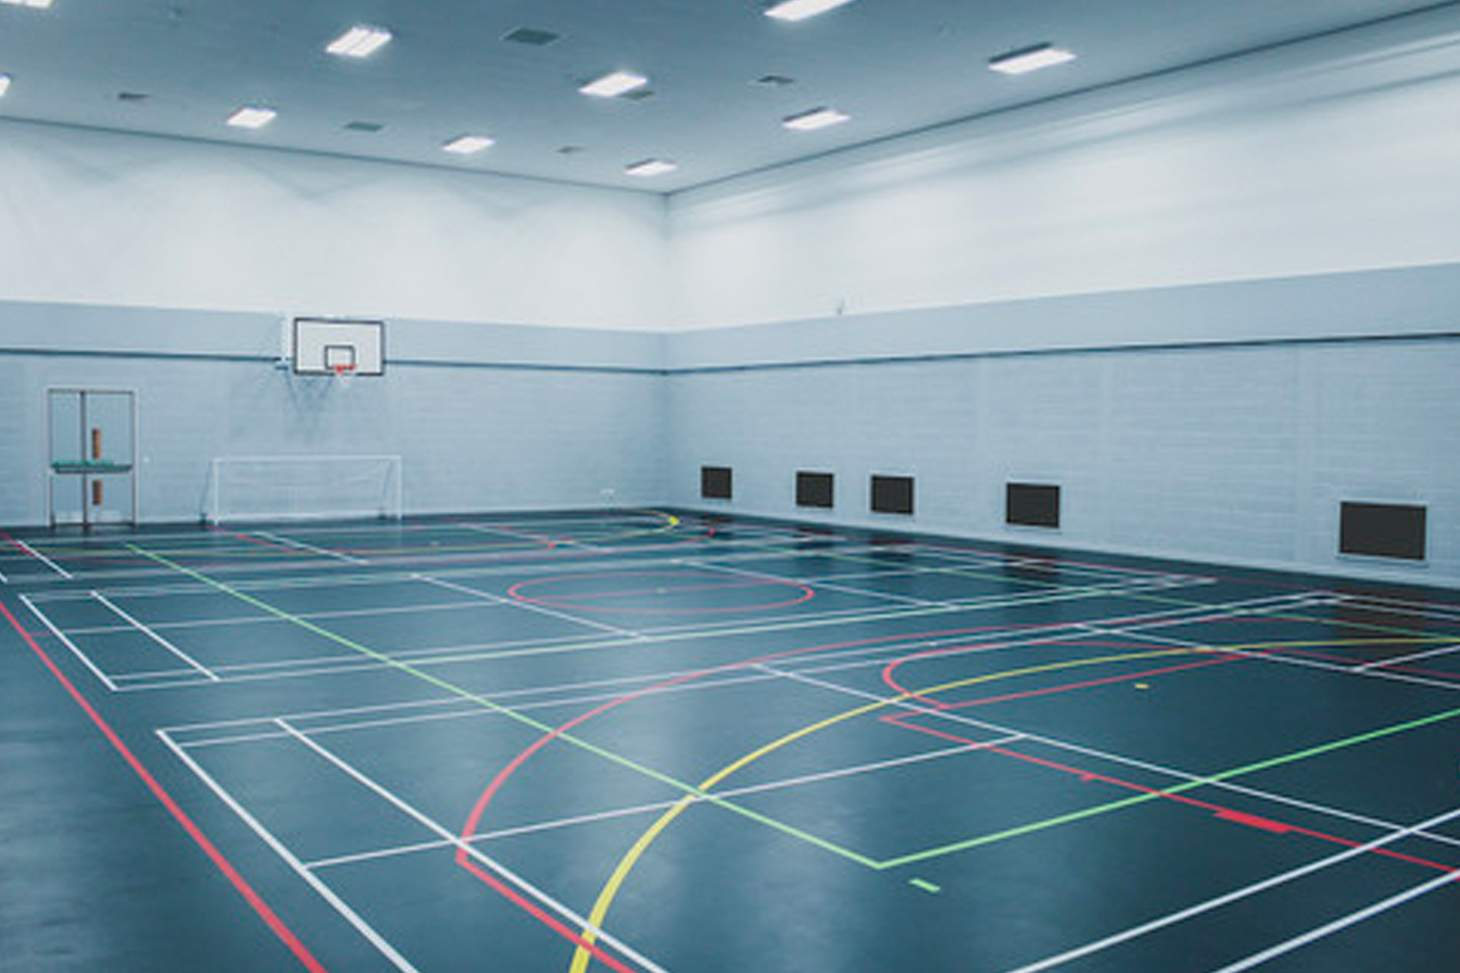 Global Academy, Hayes Court   Sports hall badminton court